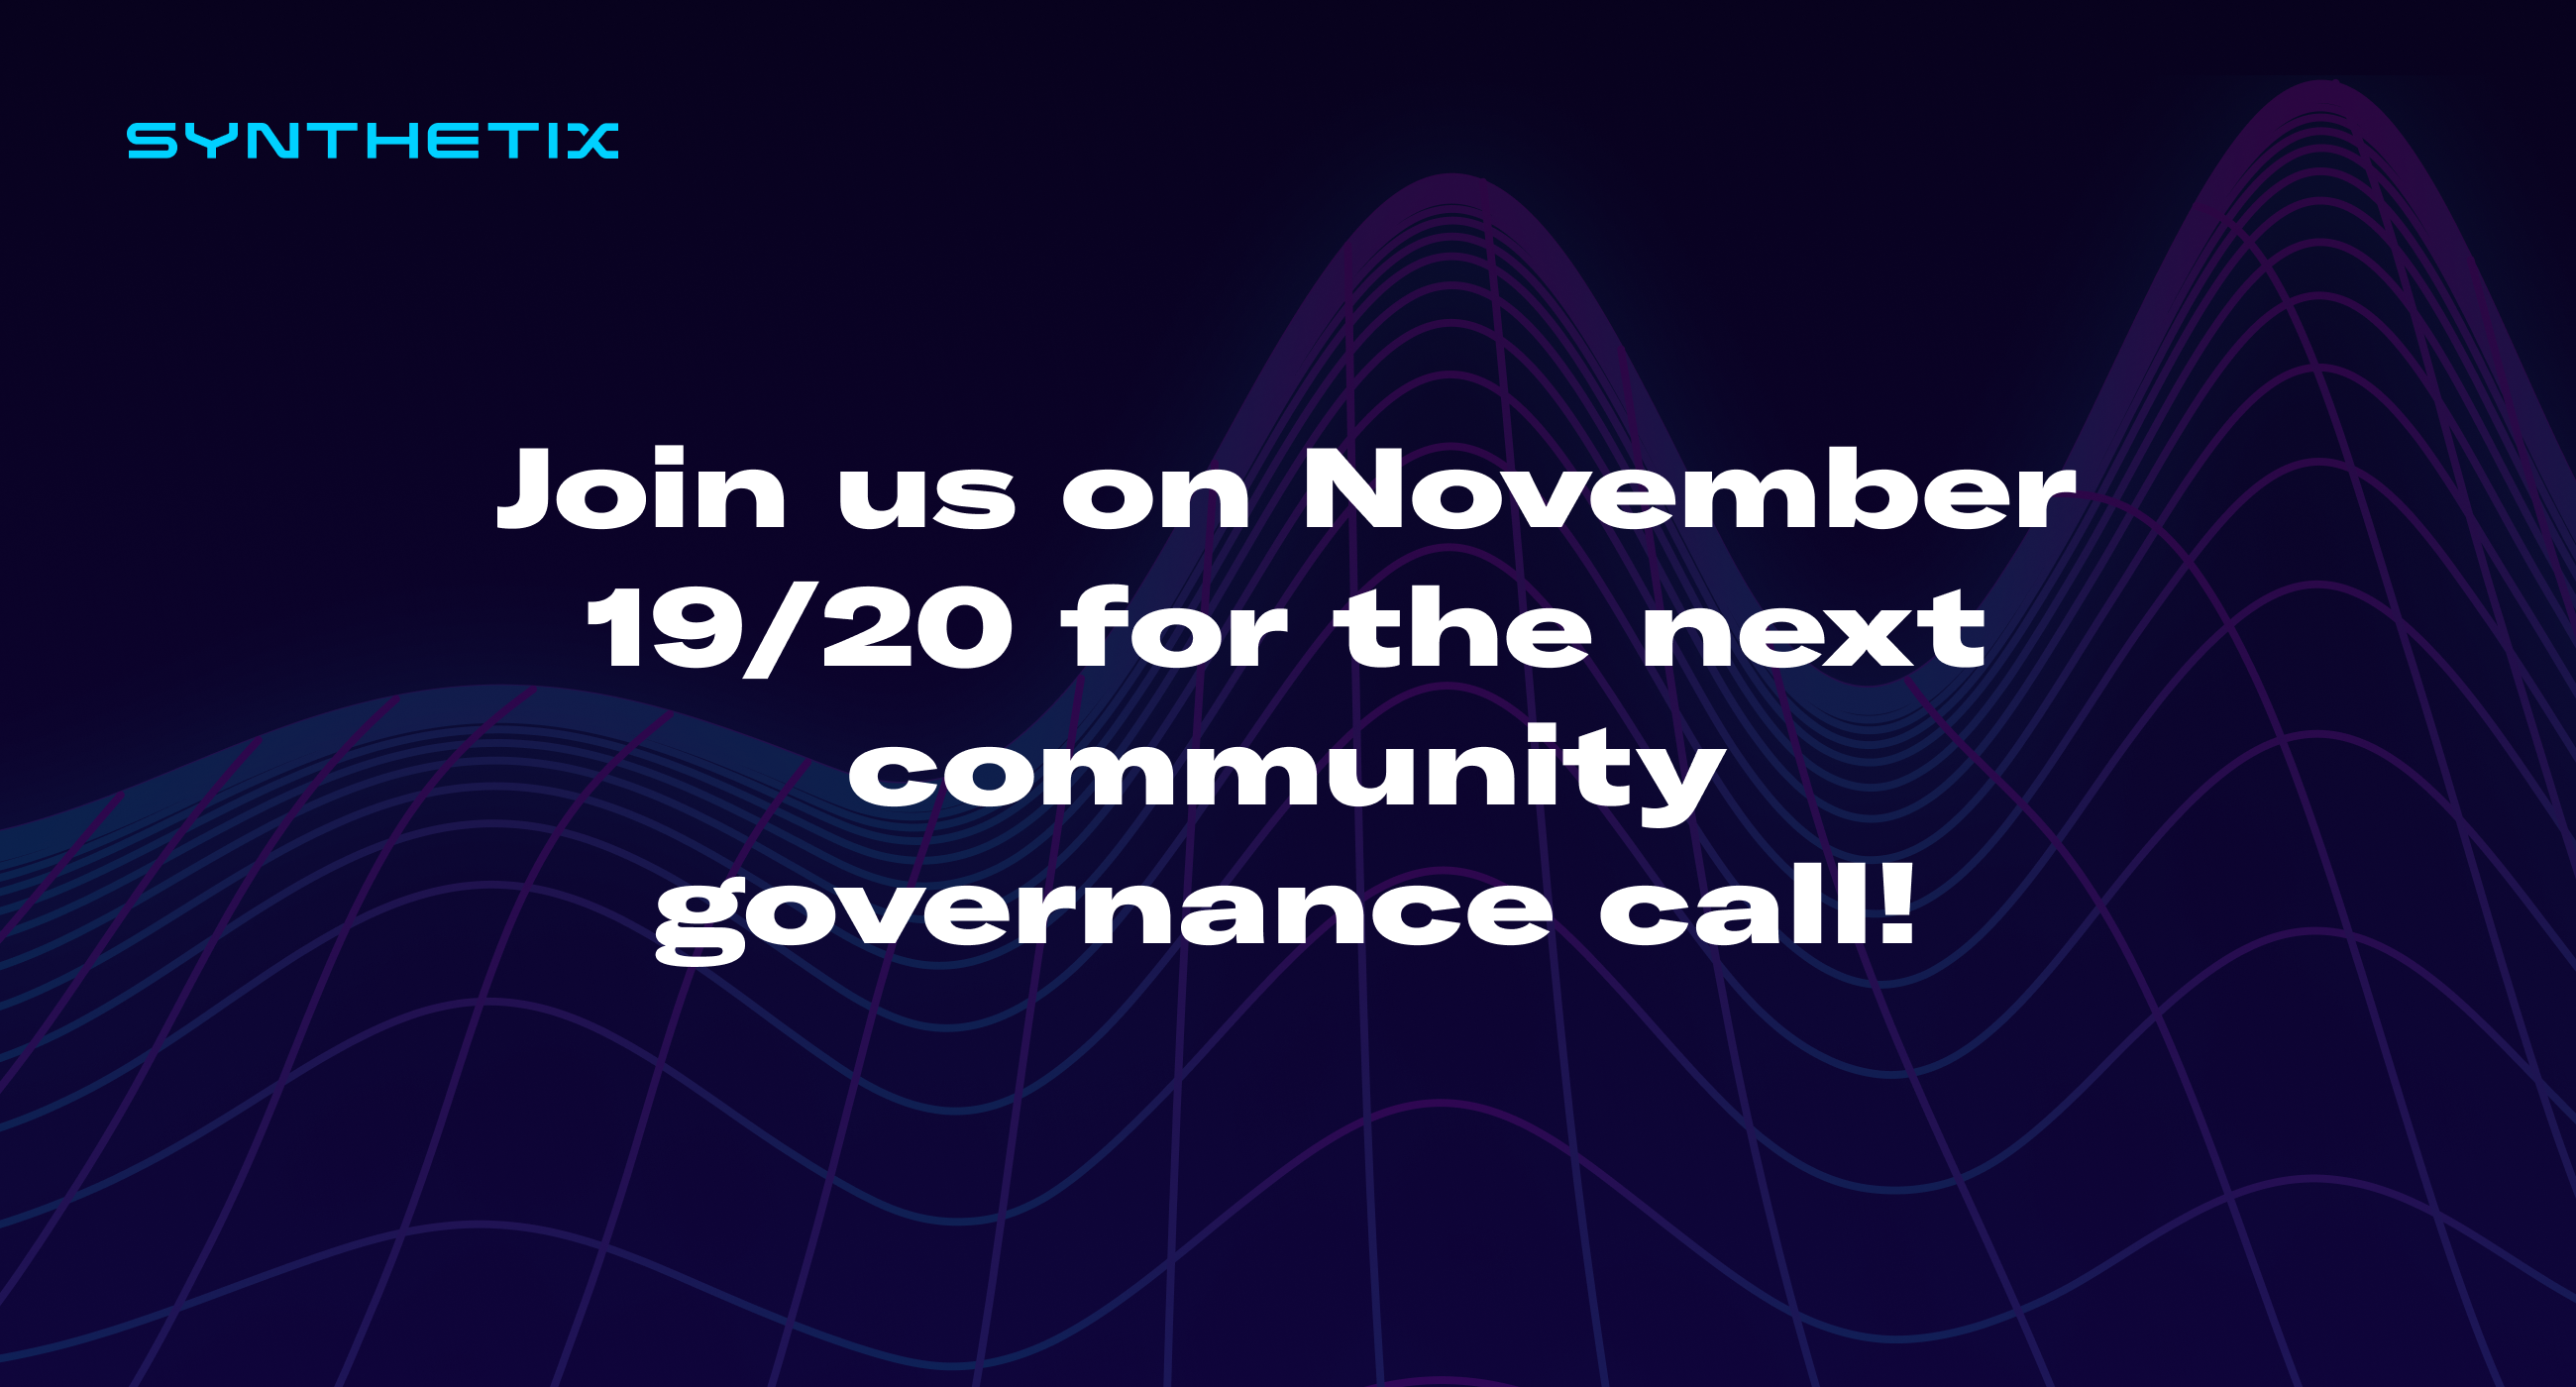 Join us on November 19/20 for the next Synthetix community governance call!